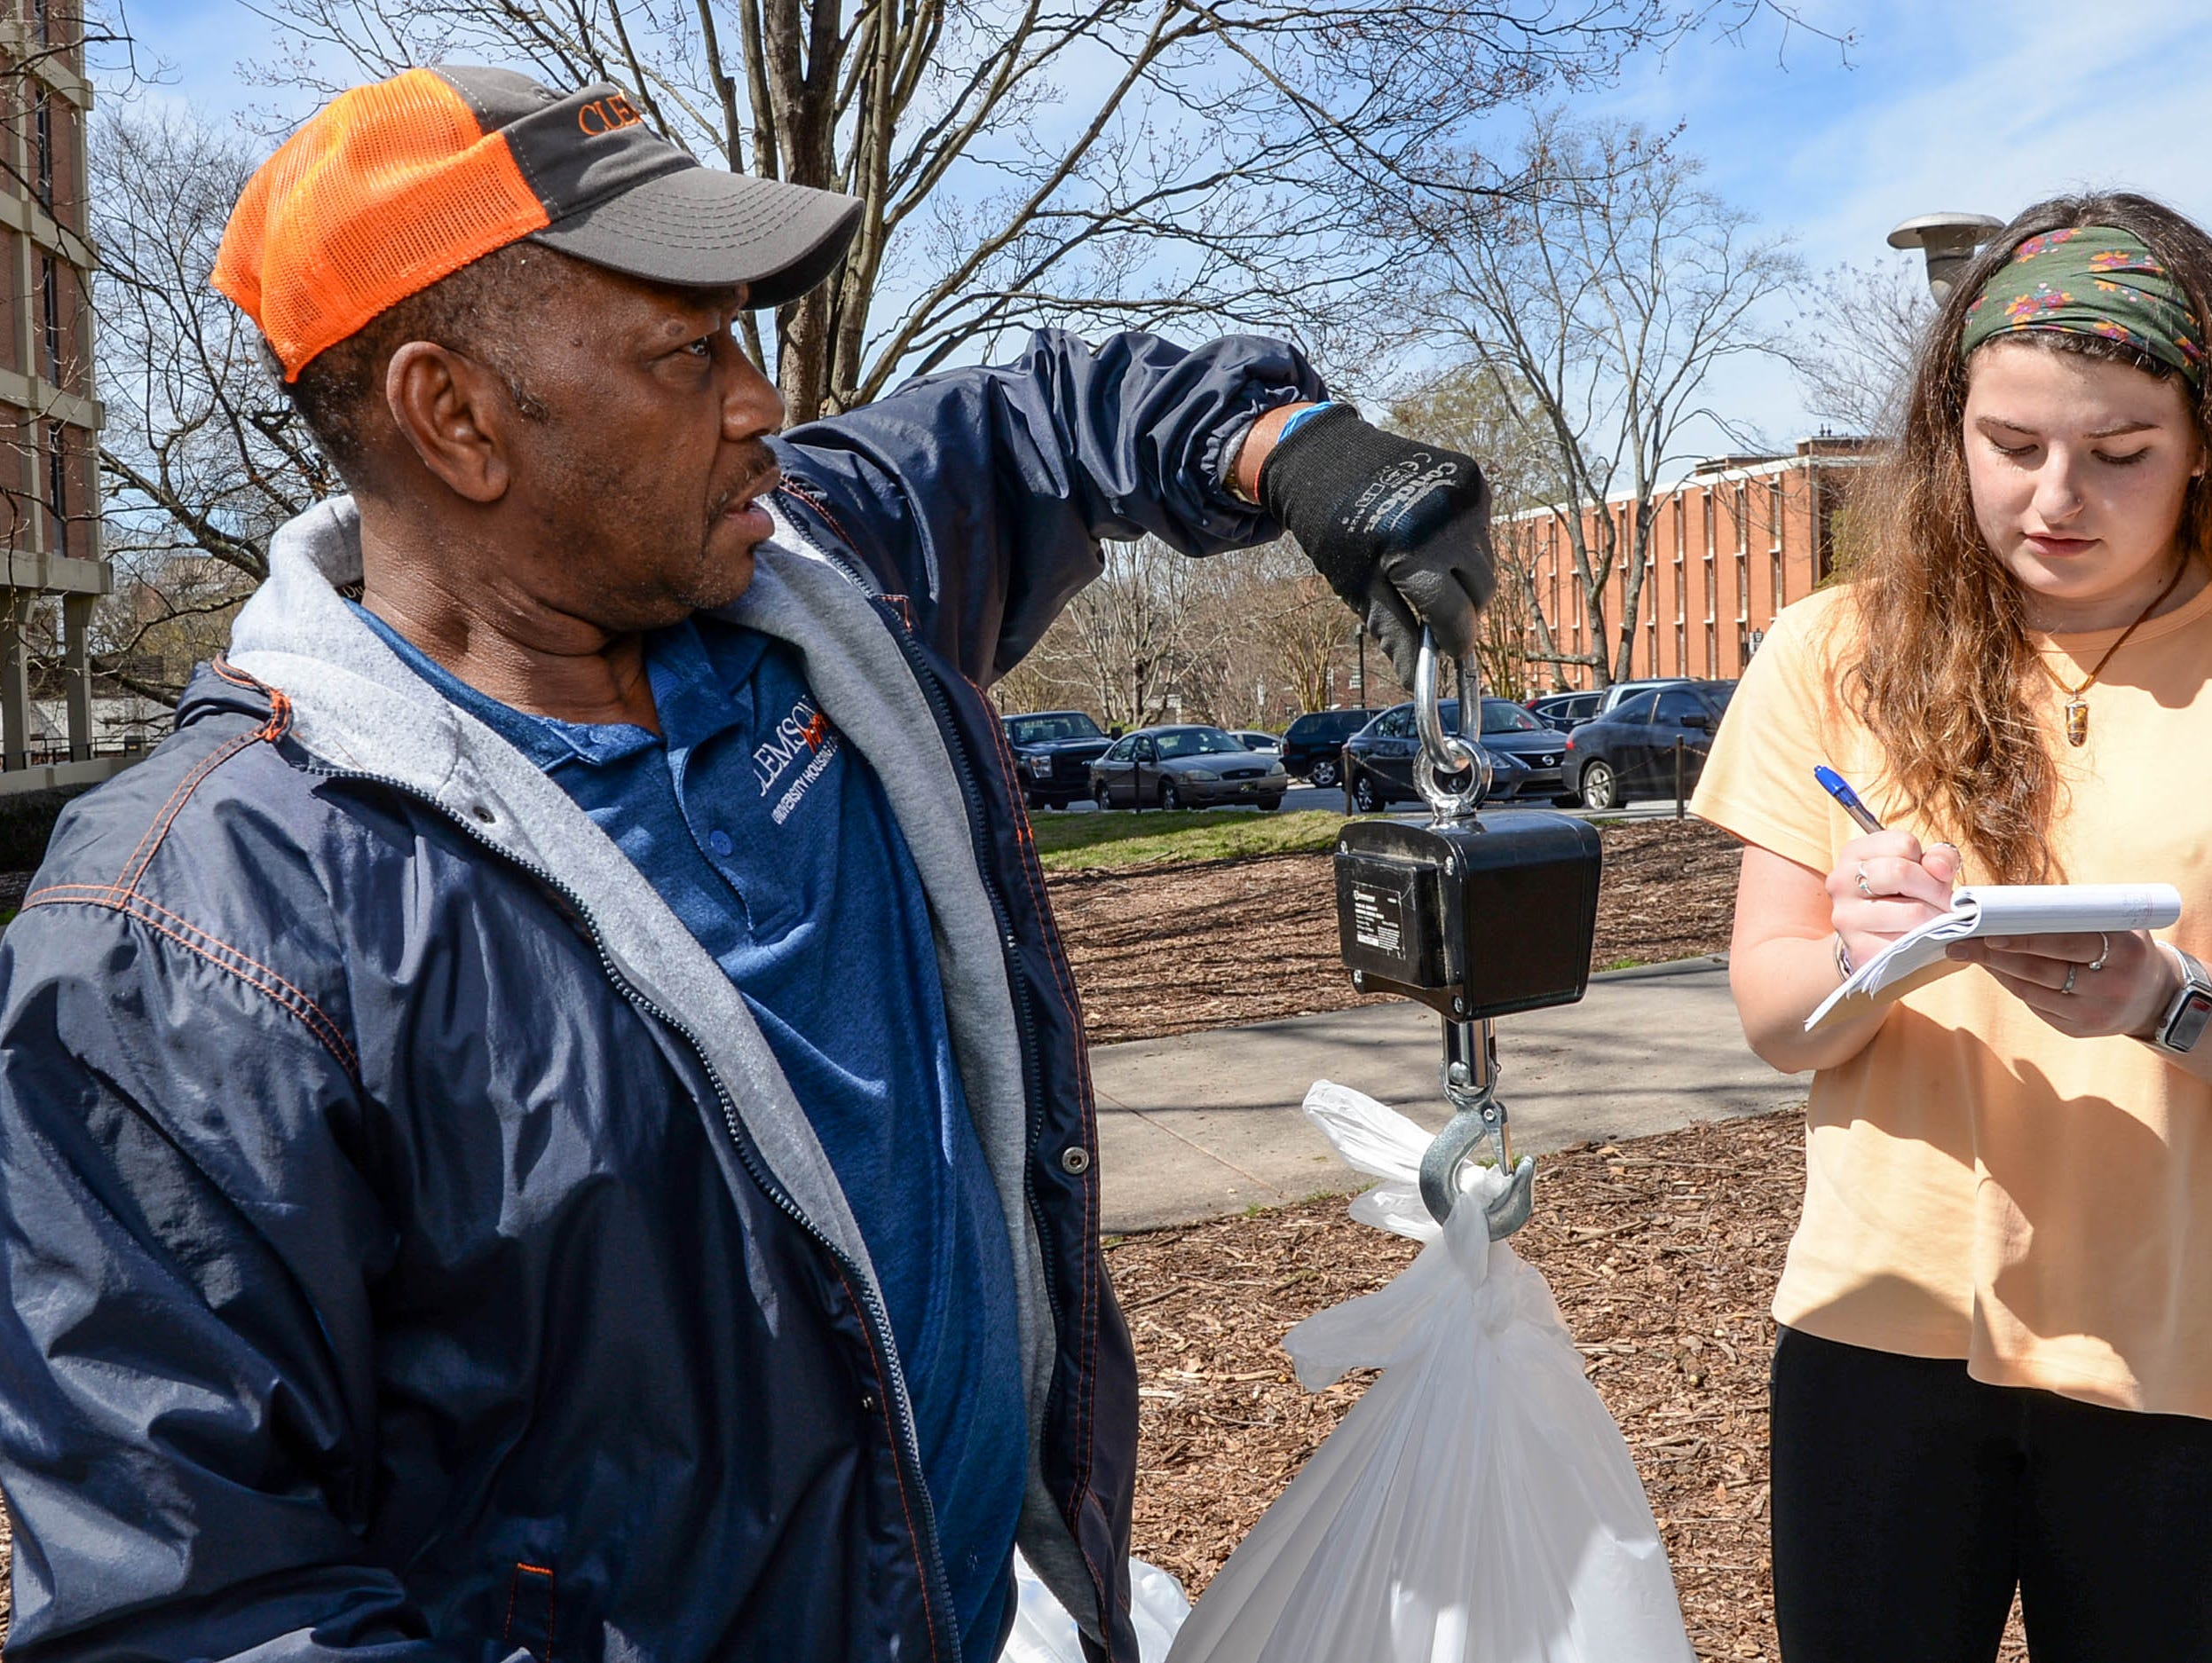 Clemson University student Olivia McQuarrie, right, writes down the weight of plastic in a bag held by facilities department employee Roy Wilson during a study of student recycle habits March 12. The waste audit, part of the annual RecycleMania competition with Universities across the country found from a sample study that Clemson students who recycle plastic and cans are good at doing so, said Morra, leading the study on the lawn outside Manning and Byrnes Hall tower dormitories.